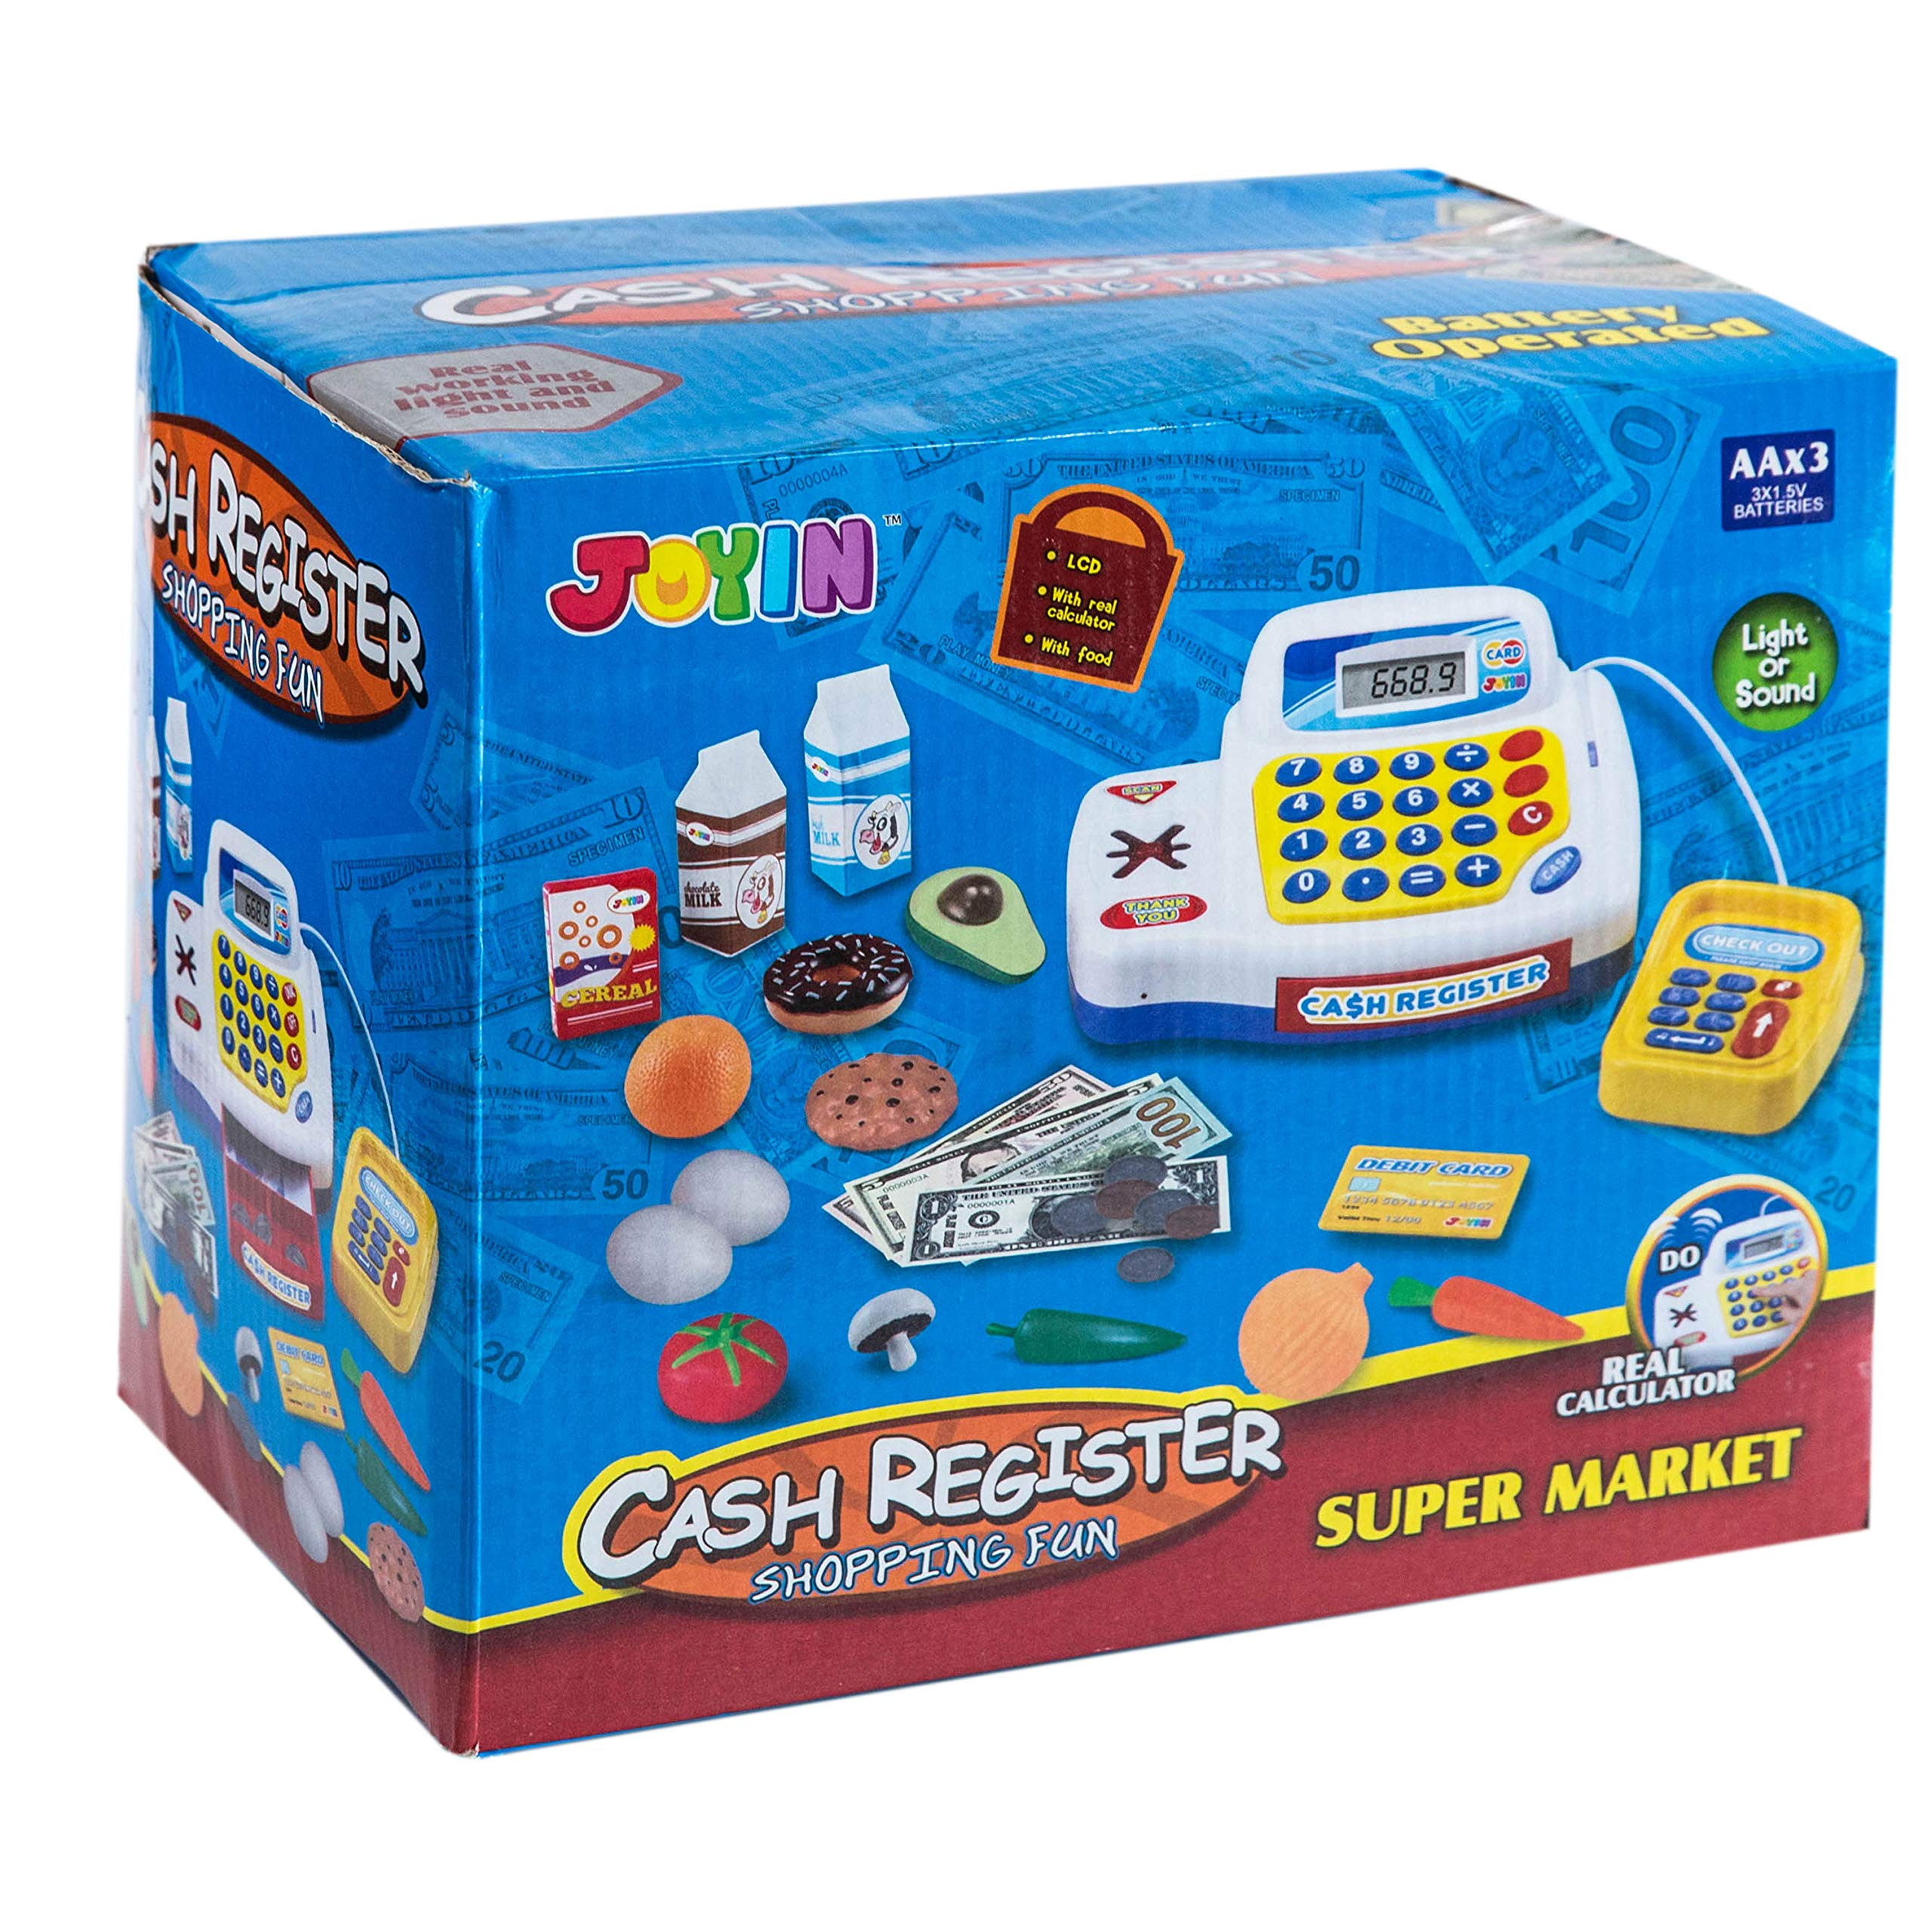 Toy Cash Register Shopping Pretend Play Money Machine with Dual Languages, Scanner, Card Reader and Grocery Play Food Set for Kids Boys and Girls Gifts, Toddler Interactive Learning, Teaching Tools. by JOYIN (Image #5)